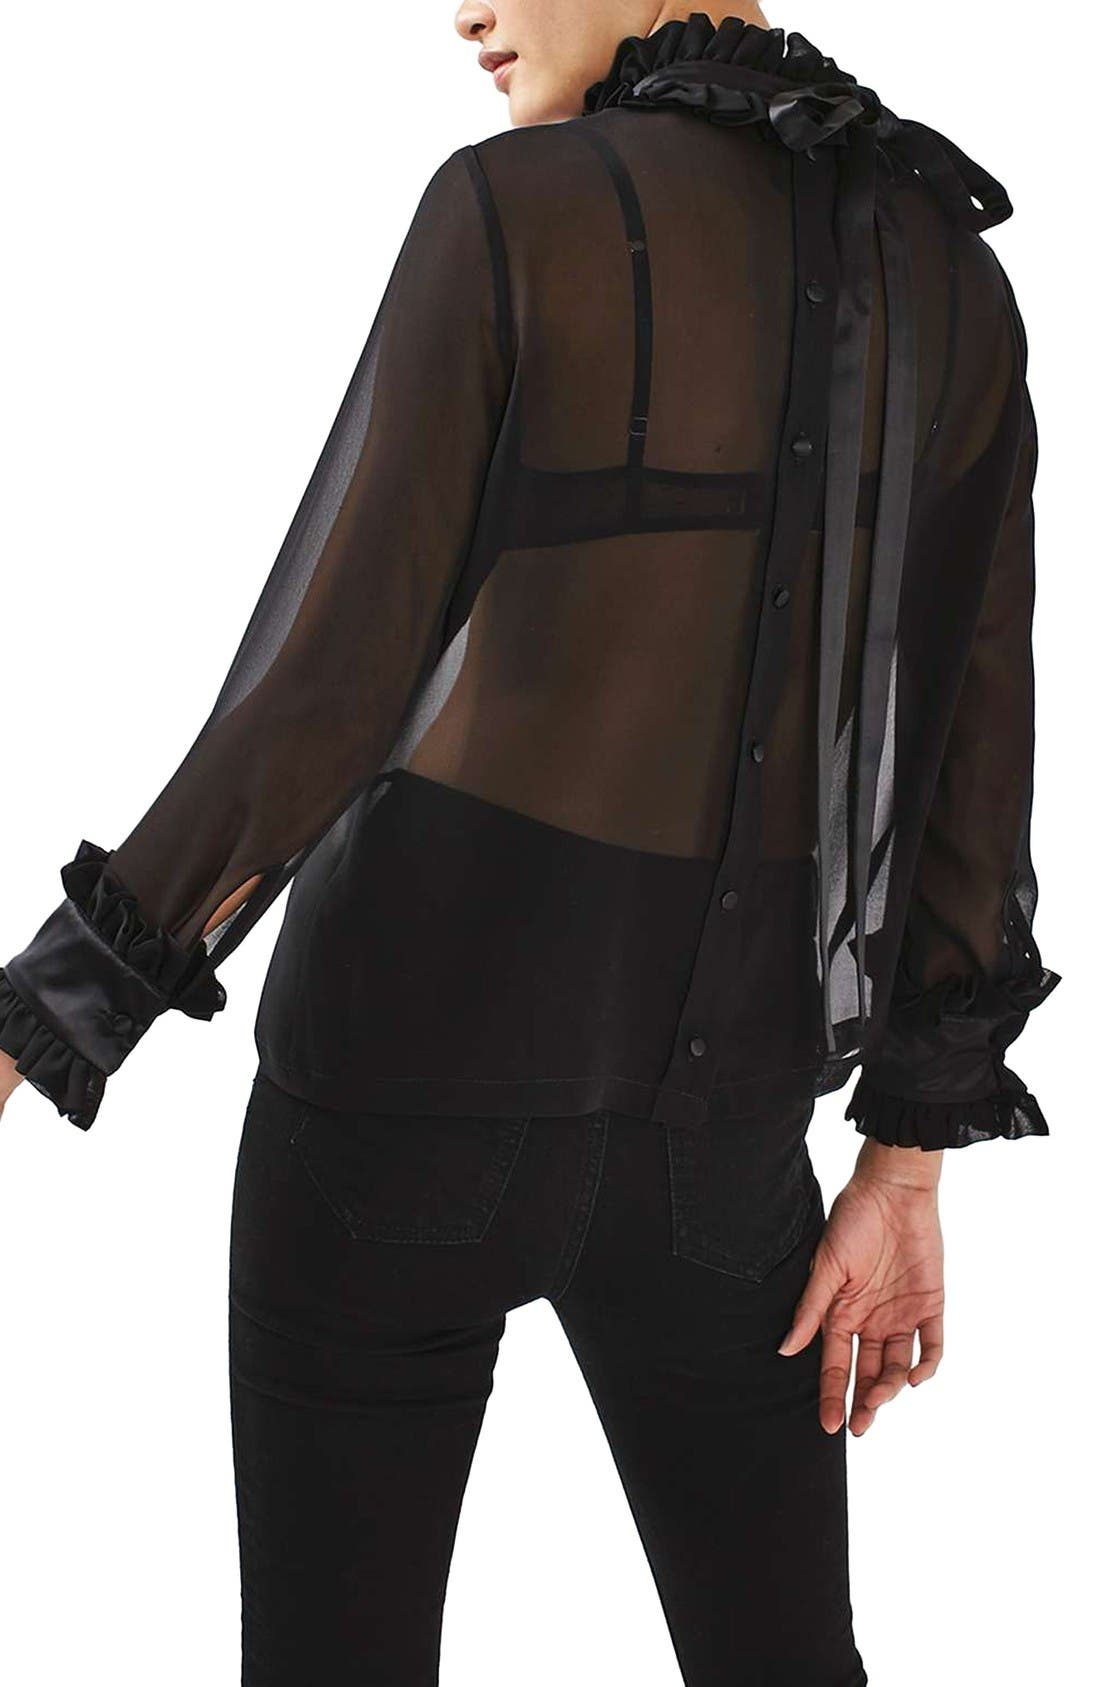 Hagen Sheer Silk Blouse,                             Alternate thumbnail 5, color,                             Black